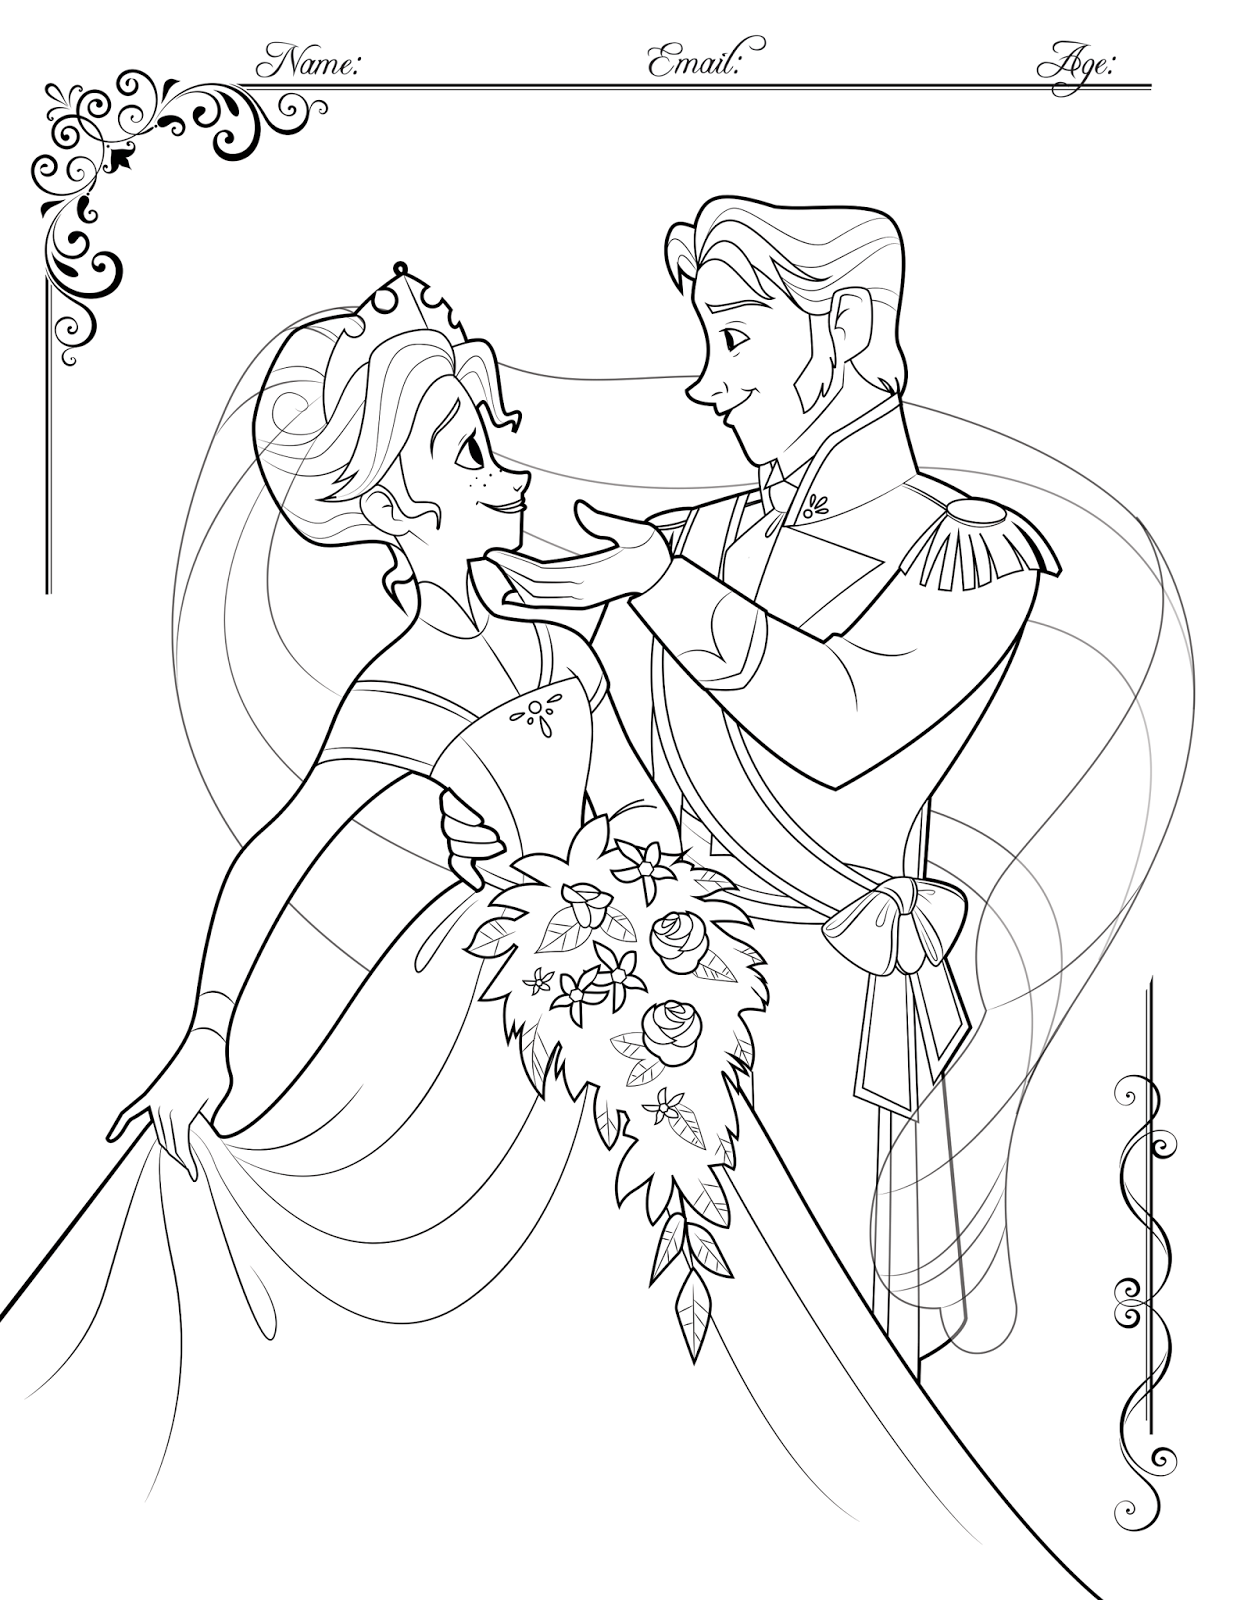 Coloring Contest On My Blog Hans And Annas Wedding Day Oh Come Frozen PagesColoring